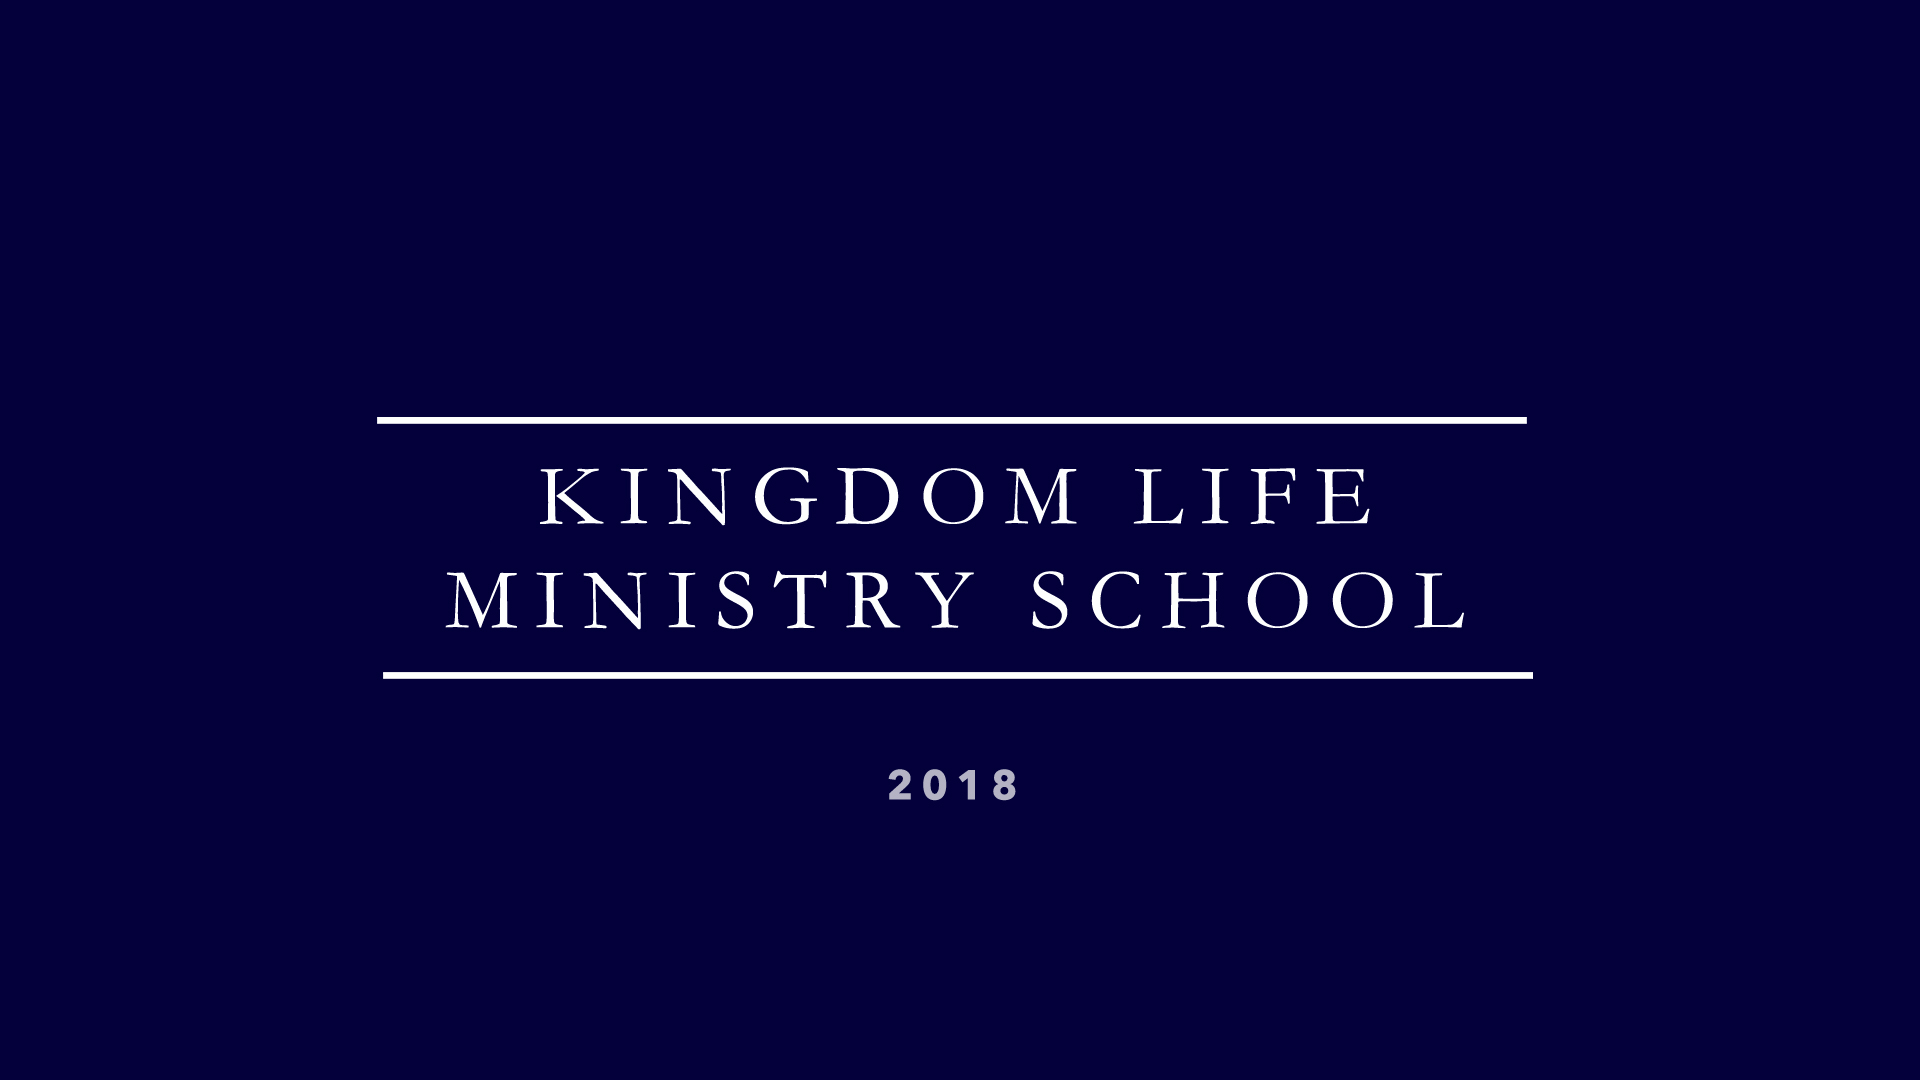 Kingdom Life Ministry School 2018 logo